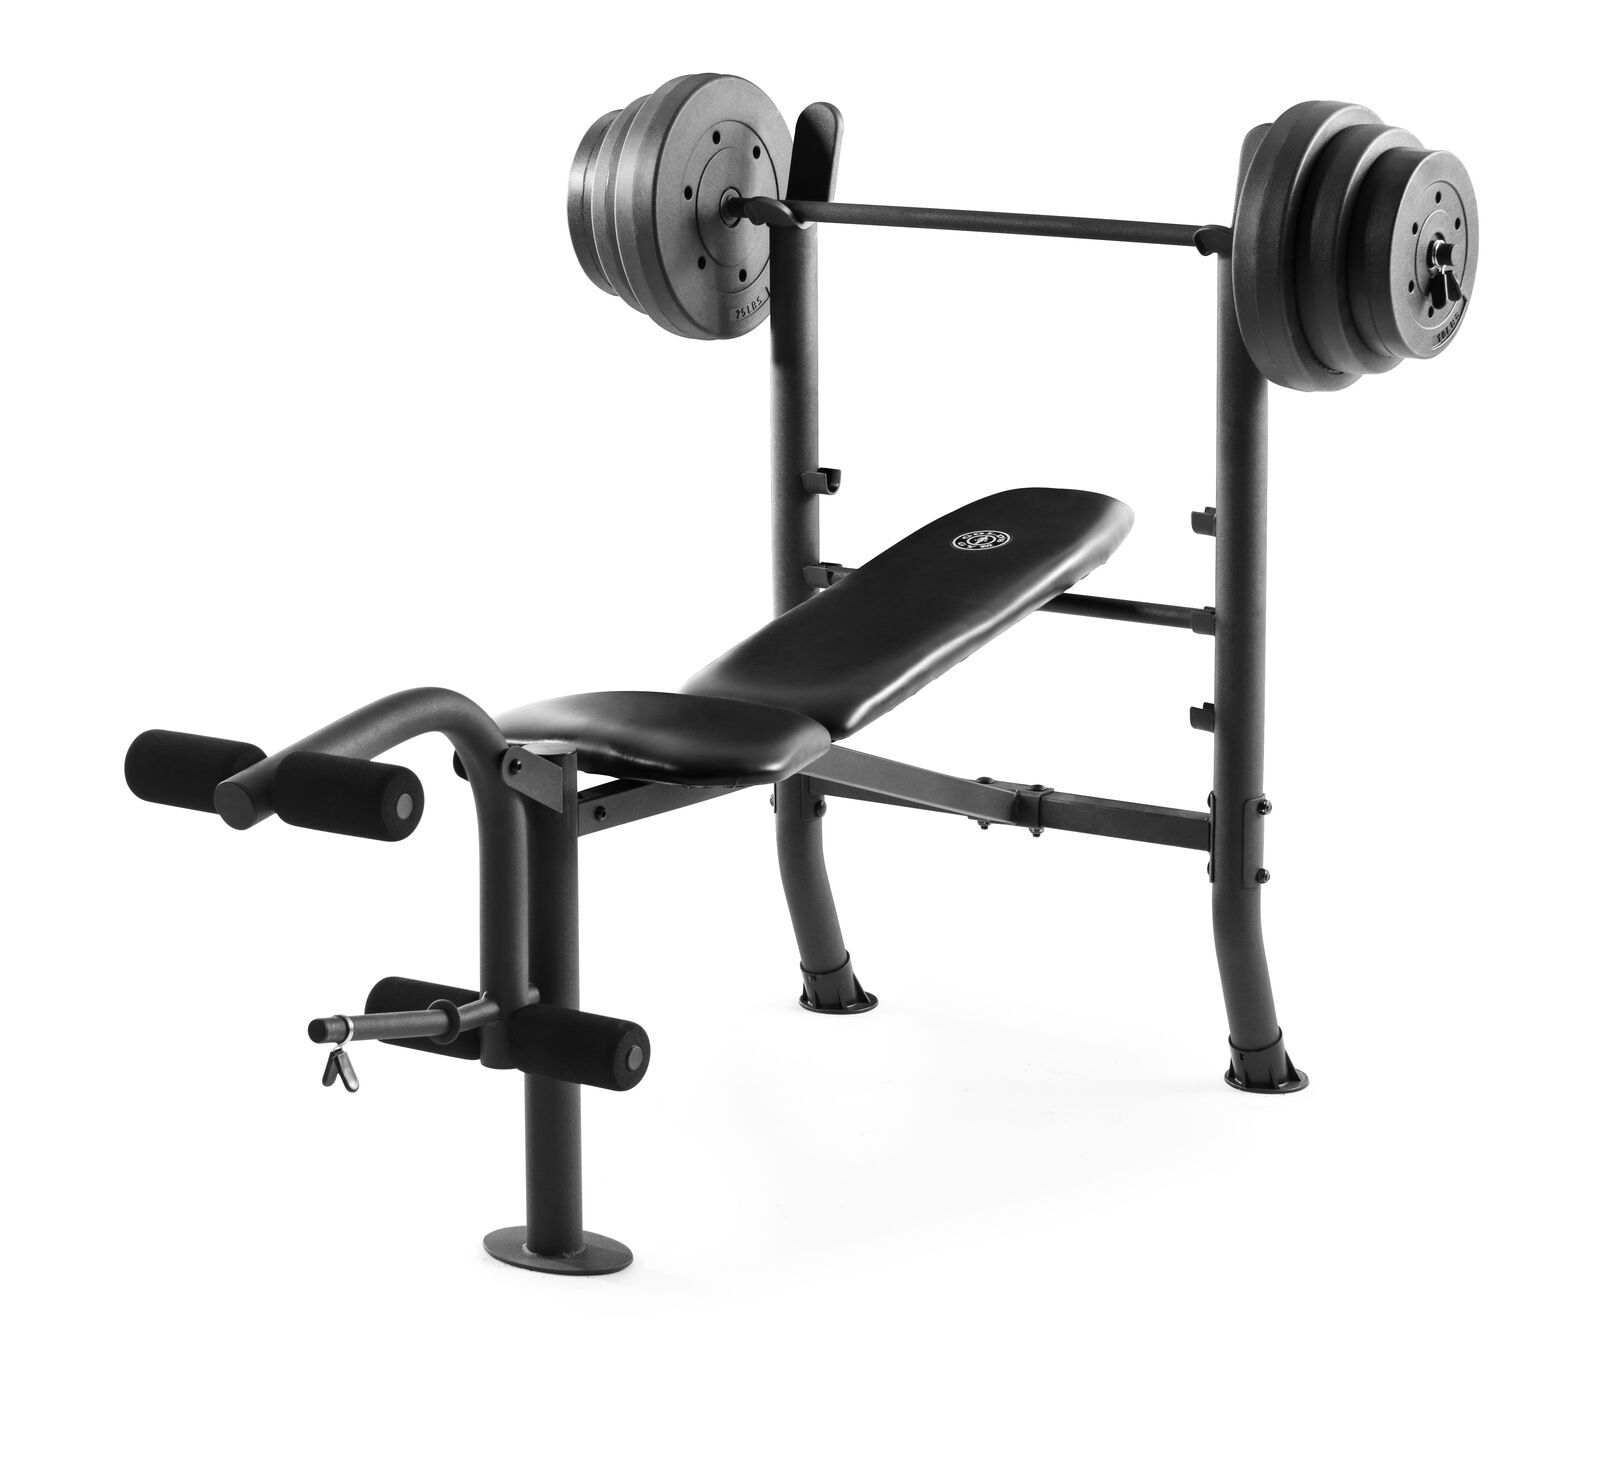 Combo Weight Bench Press with 100 Lb Vinyl Weight Set  Leg Curl Incline Decline  best sale